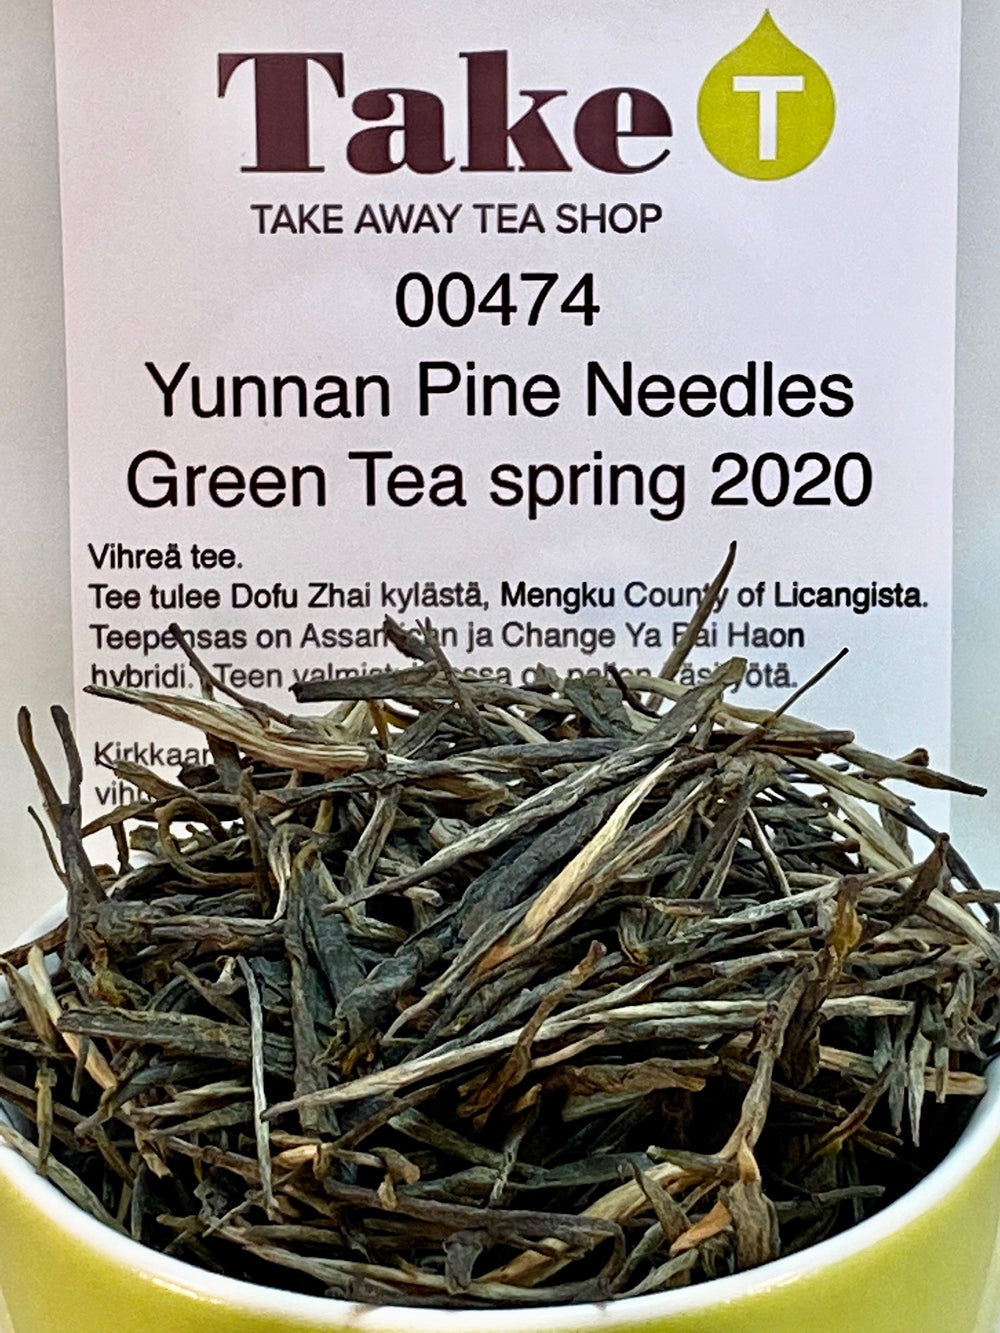 Yunnan Pine Needles Green Tea Spring 2020